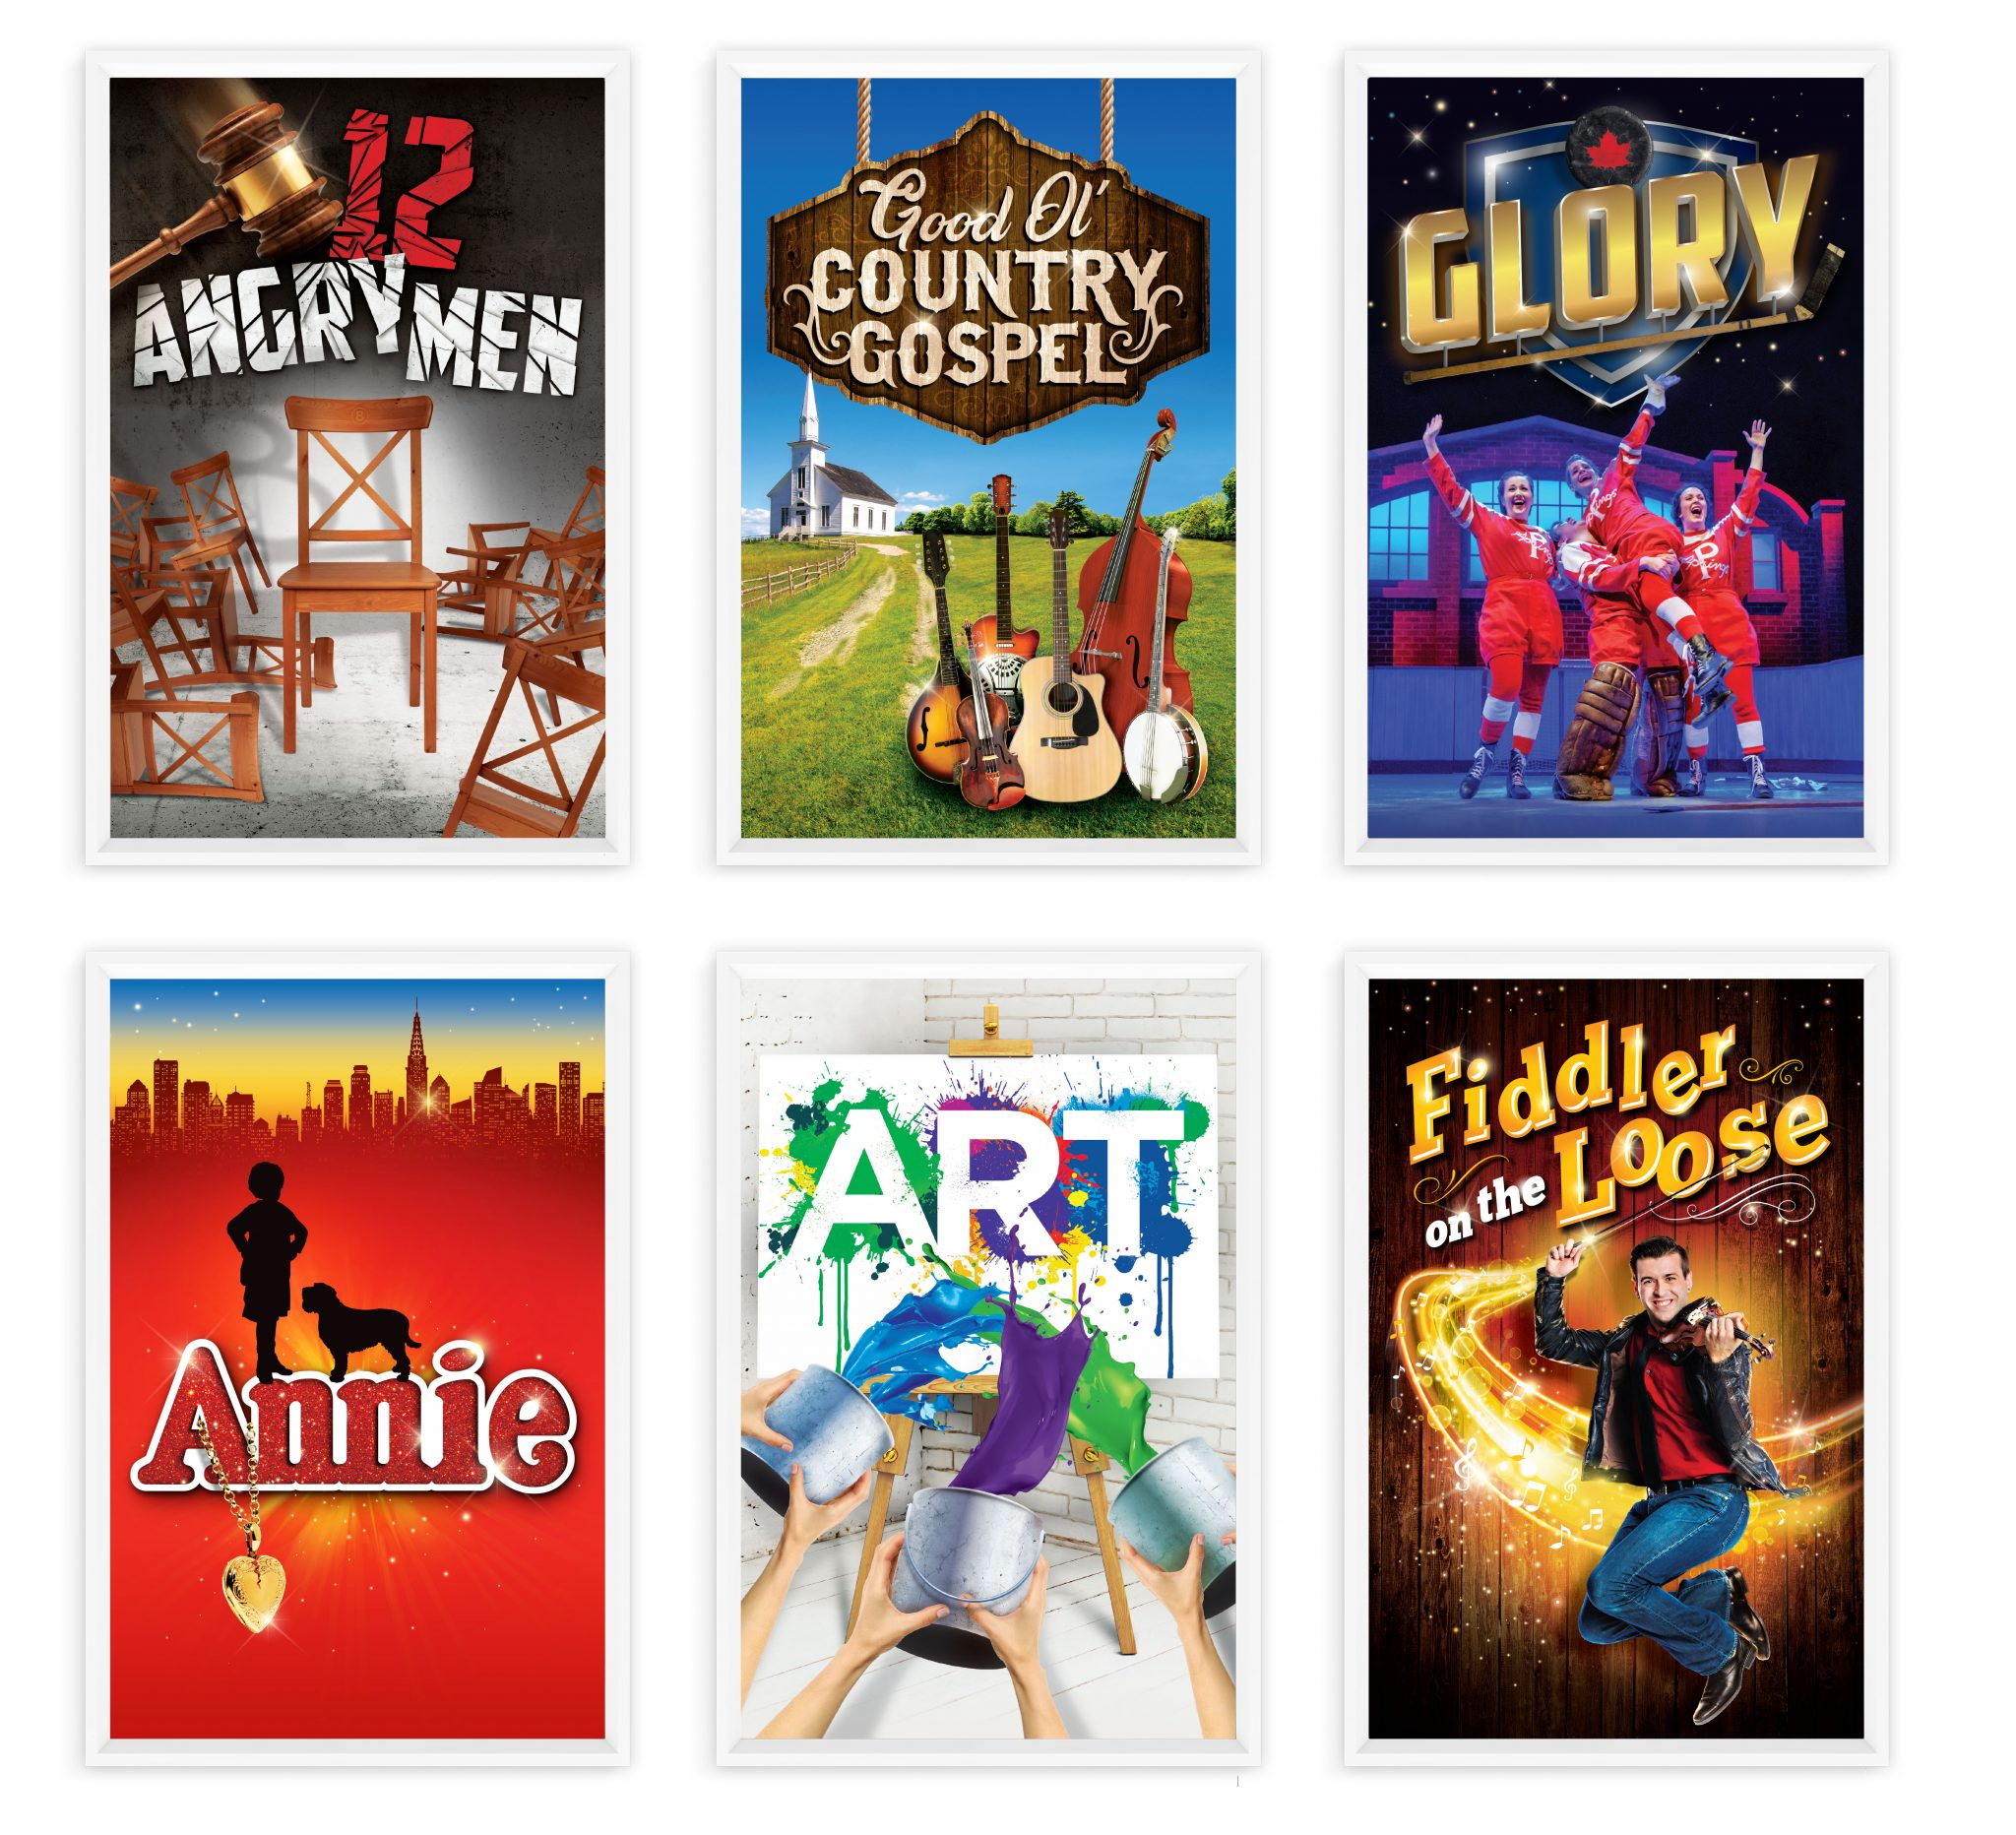 Production posters for 12 Angry Men, Good Ol' Country Gosepl, Glory, Annie, Art, and Fiddler on the Loose.